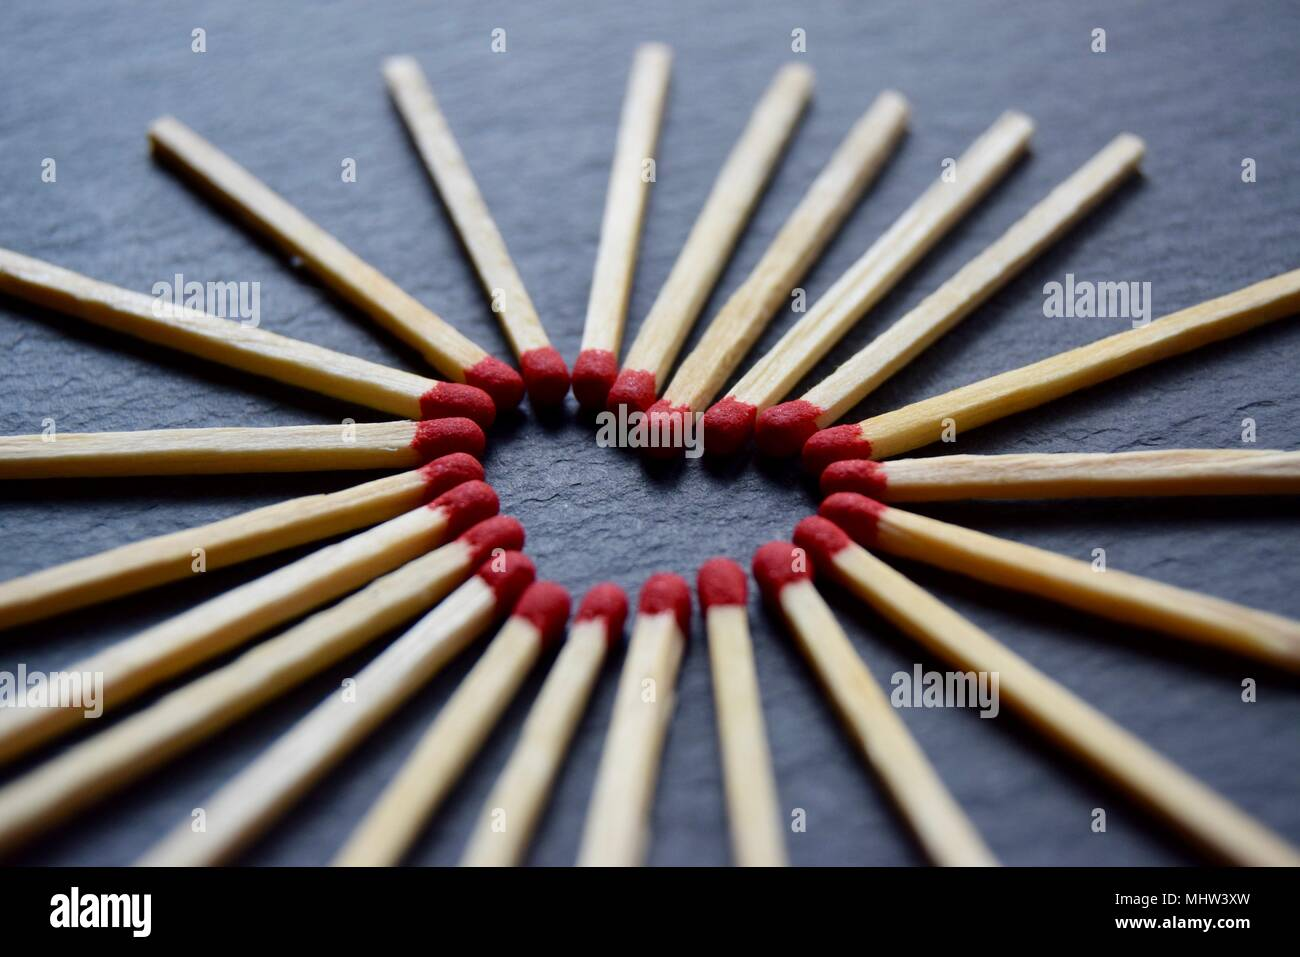 Collection of red head matches laid out in a heart forming shape on a black grey slate background. - Stock Image